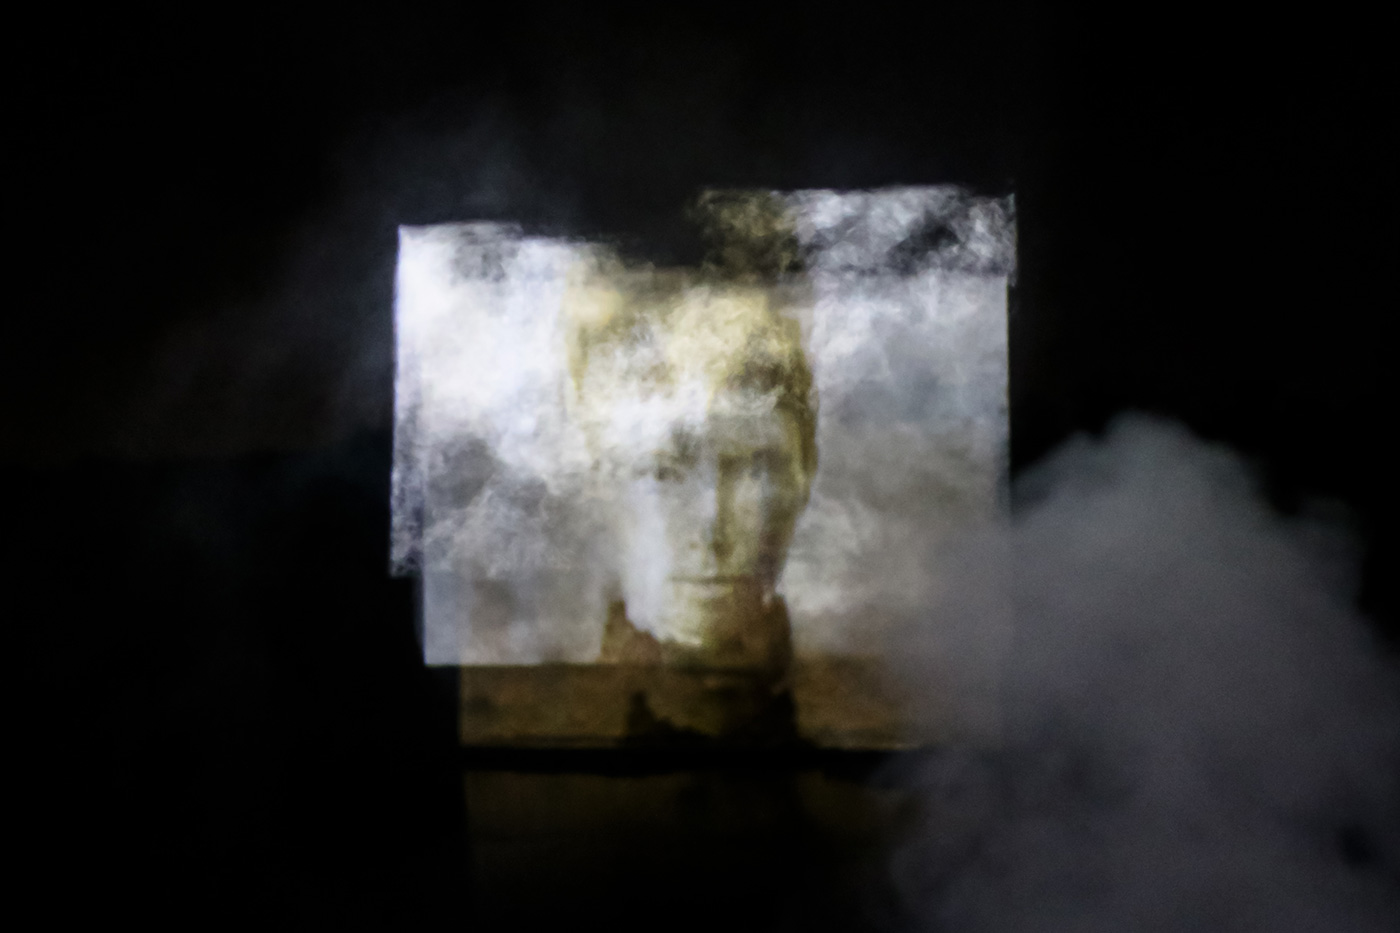 An artist's work which projects the face of a historic photo over a large screen. Fog or smoke appears in the bottom right-hand corner and there is also some appearing over the top of the projecting which seems to distort the image slightly, however the face can still be seen. - click to view larger image